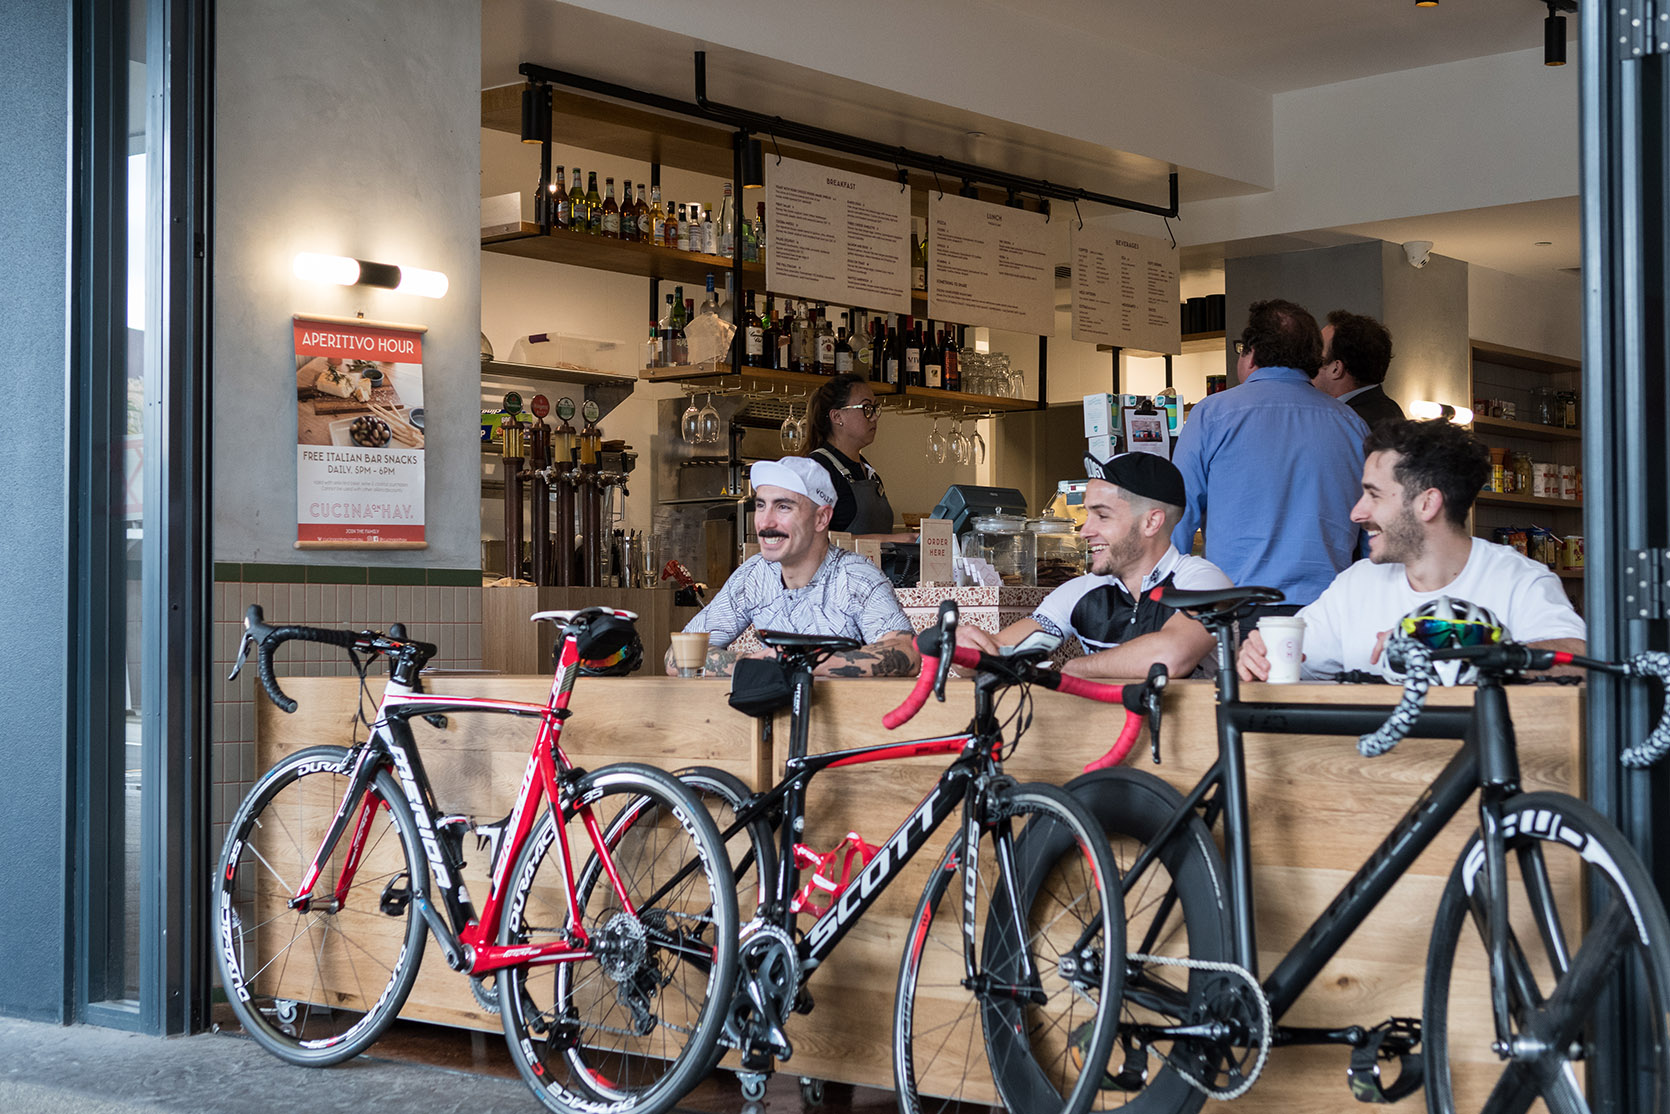 Cucina Vita Bicycle Pizza Cutter Perth City S Best Bike Friendly Cafe Cucina On Hay